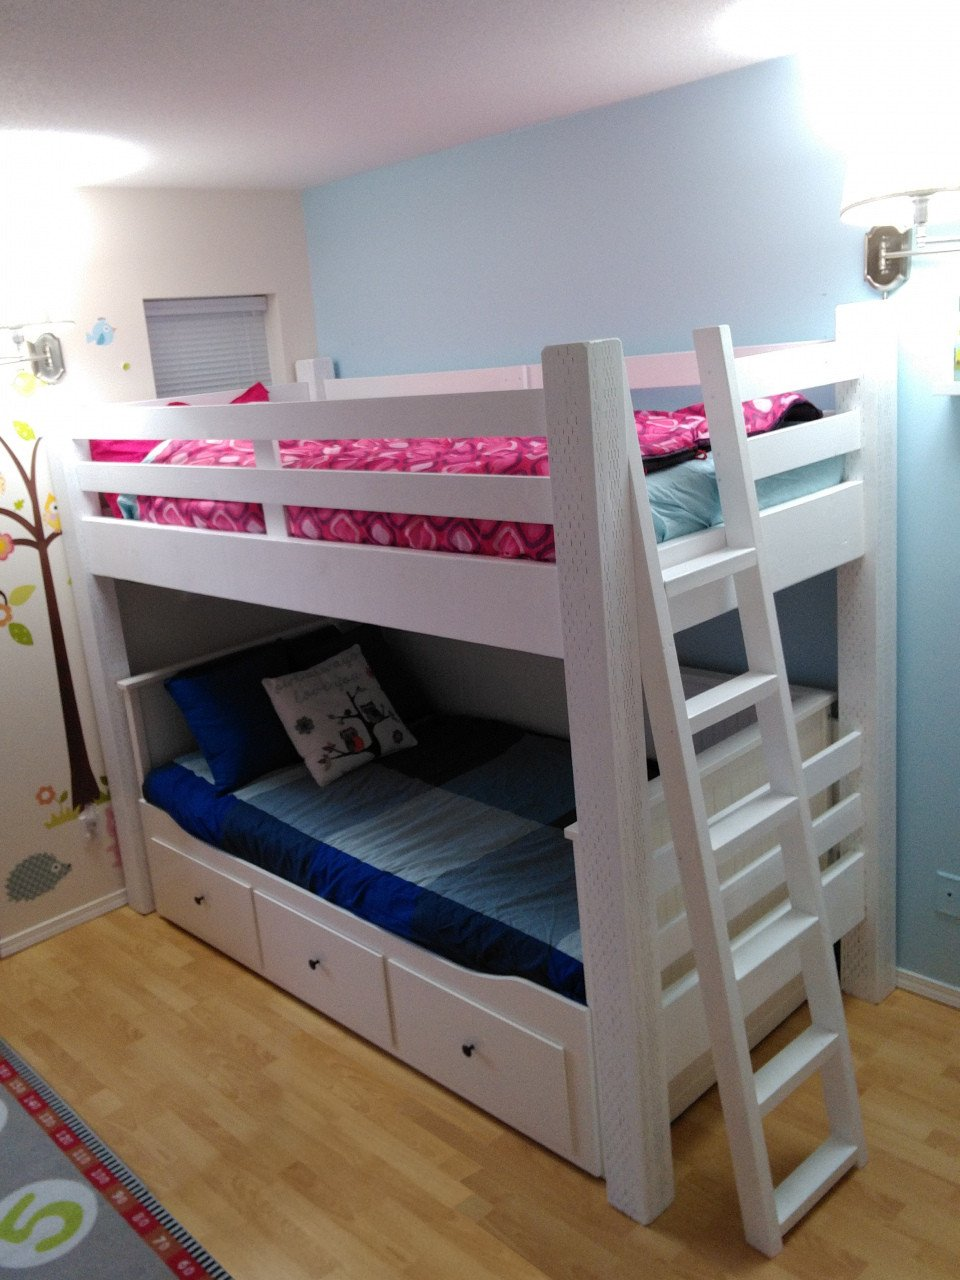 ikea kids bed custom loft bed built to wrap the ikea hemnes daybed durch ikea kids bed